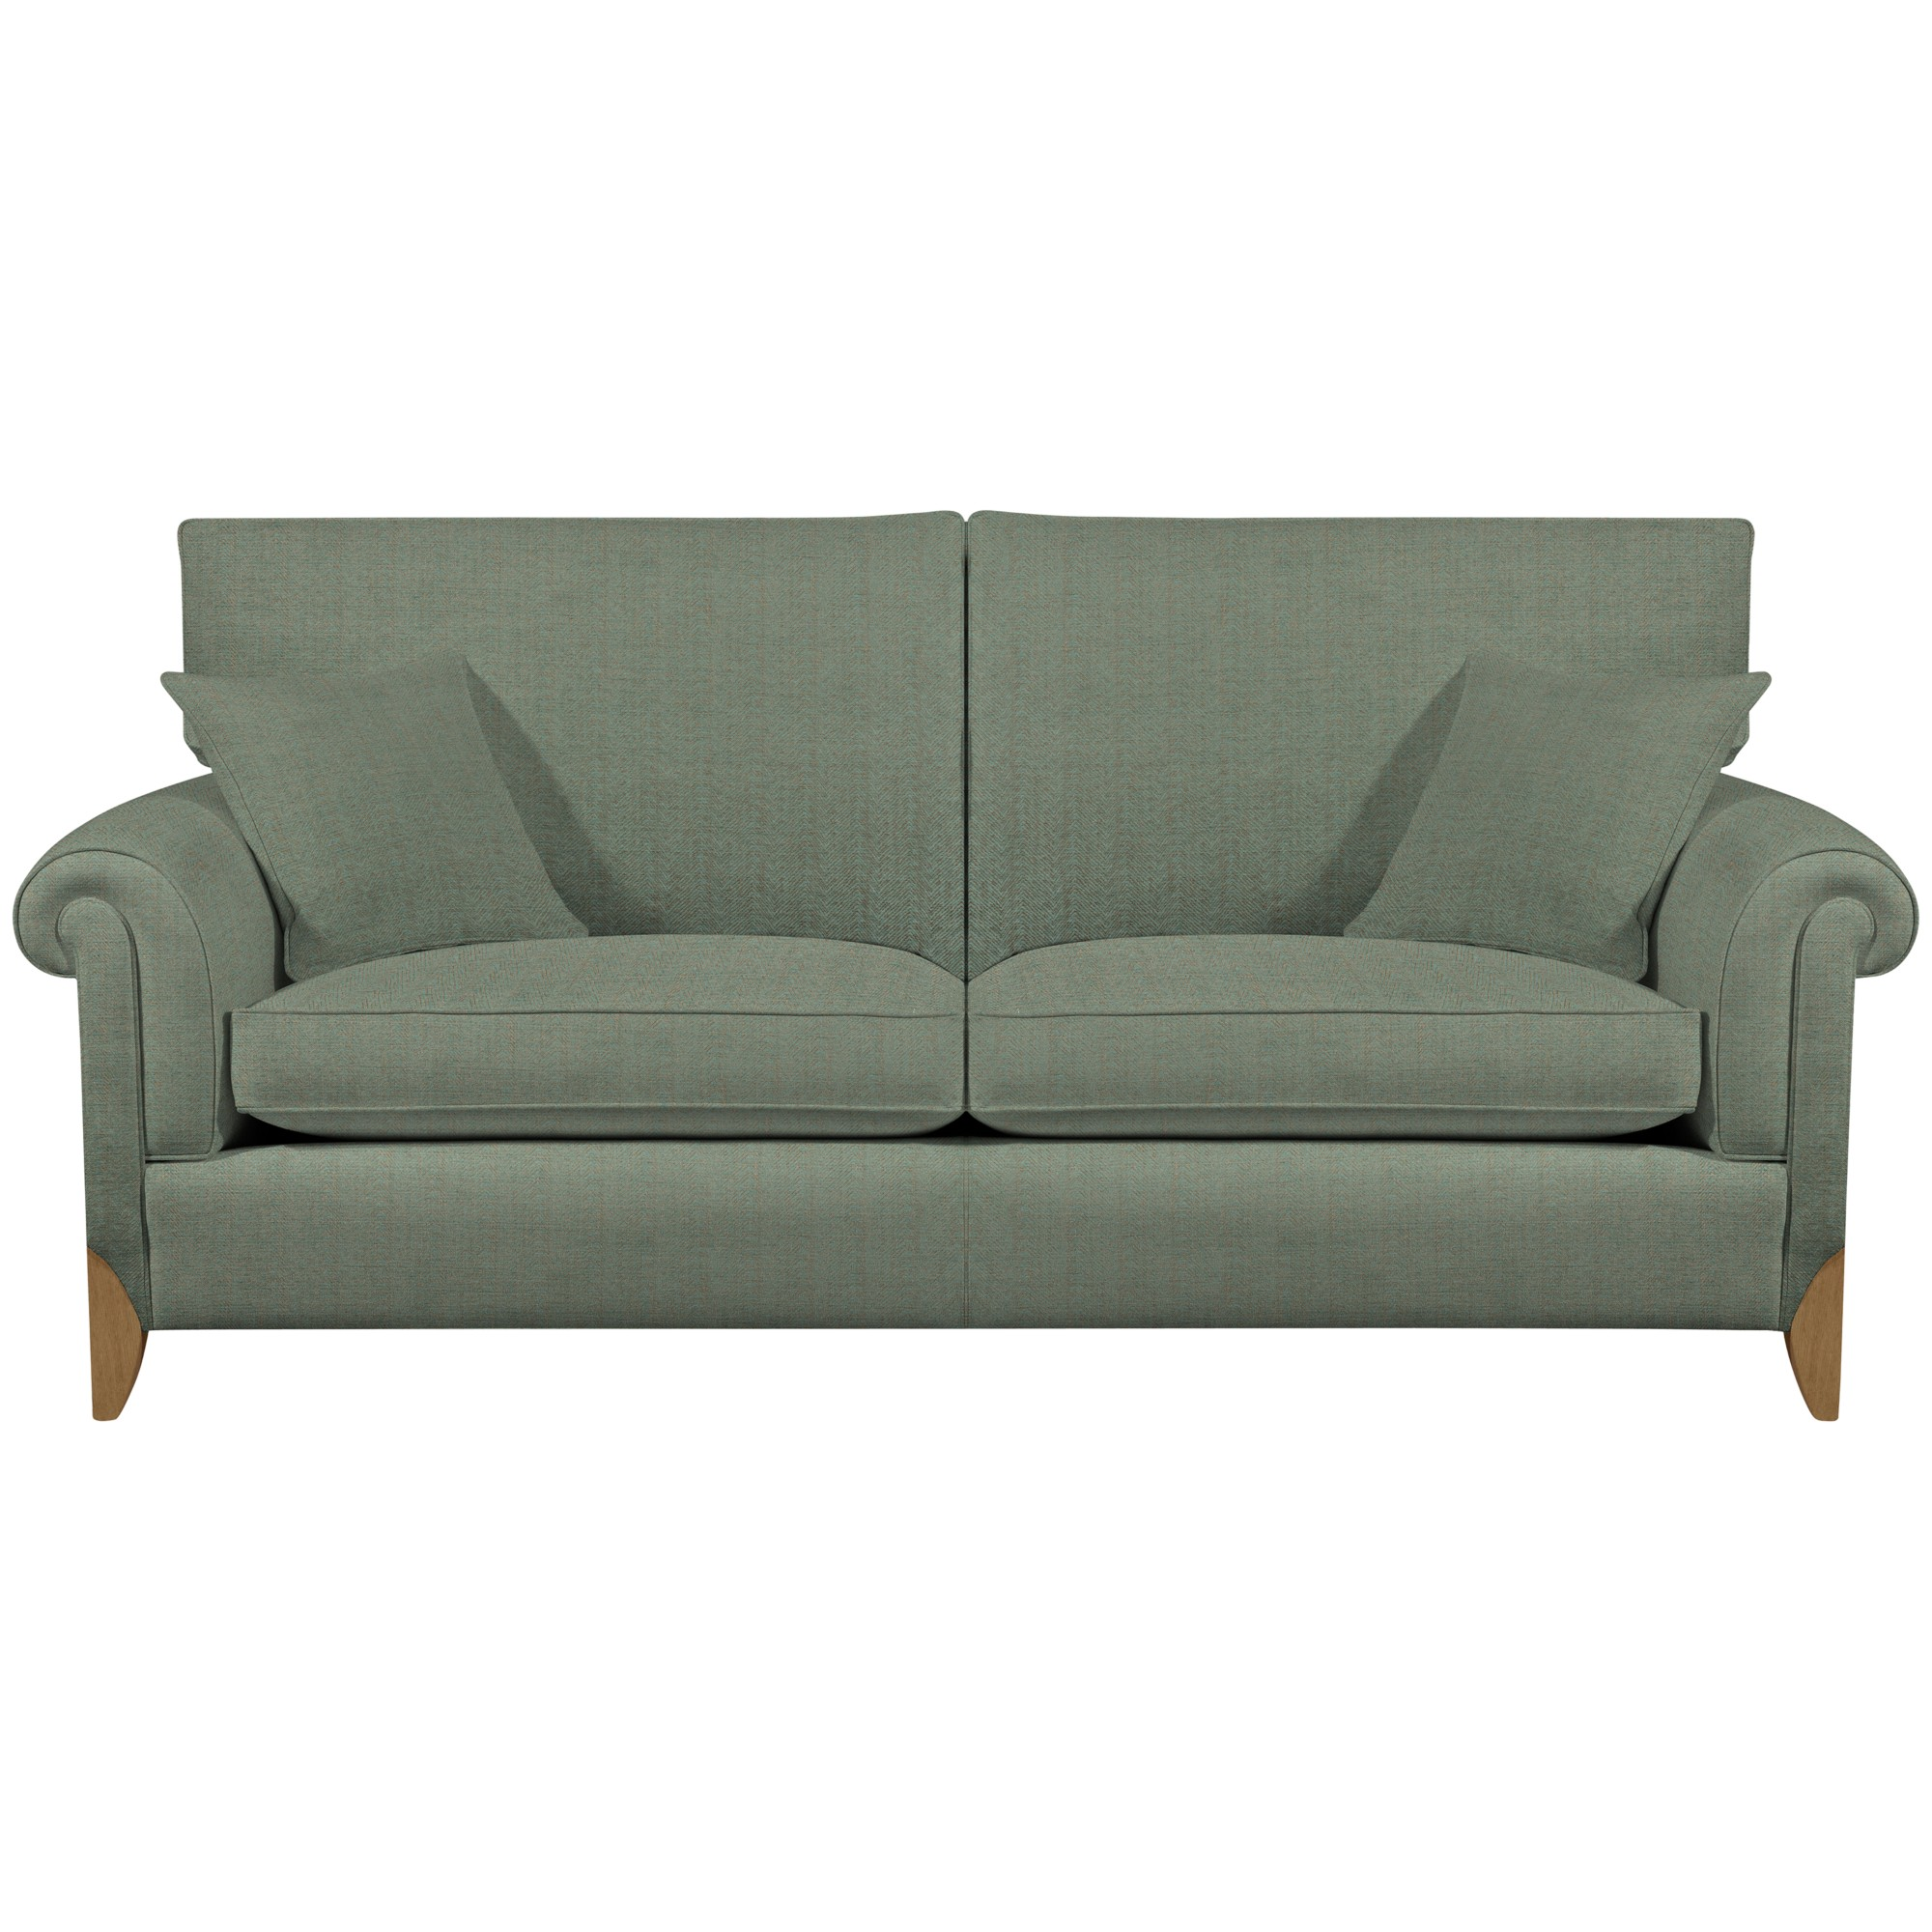 Best Prices For Duresta Sofas